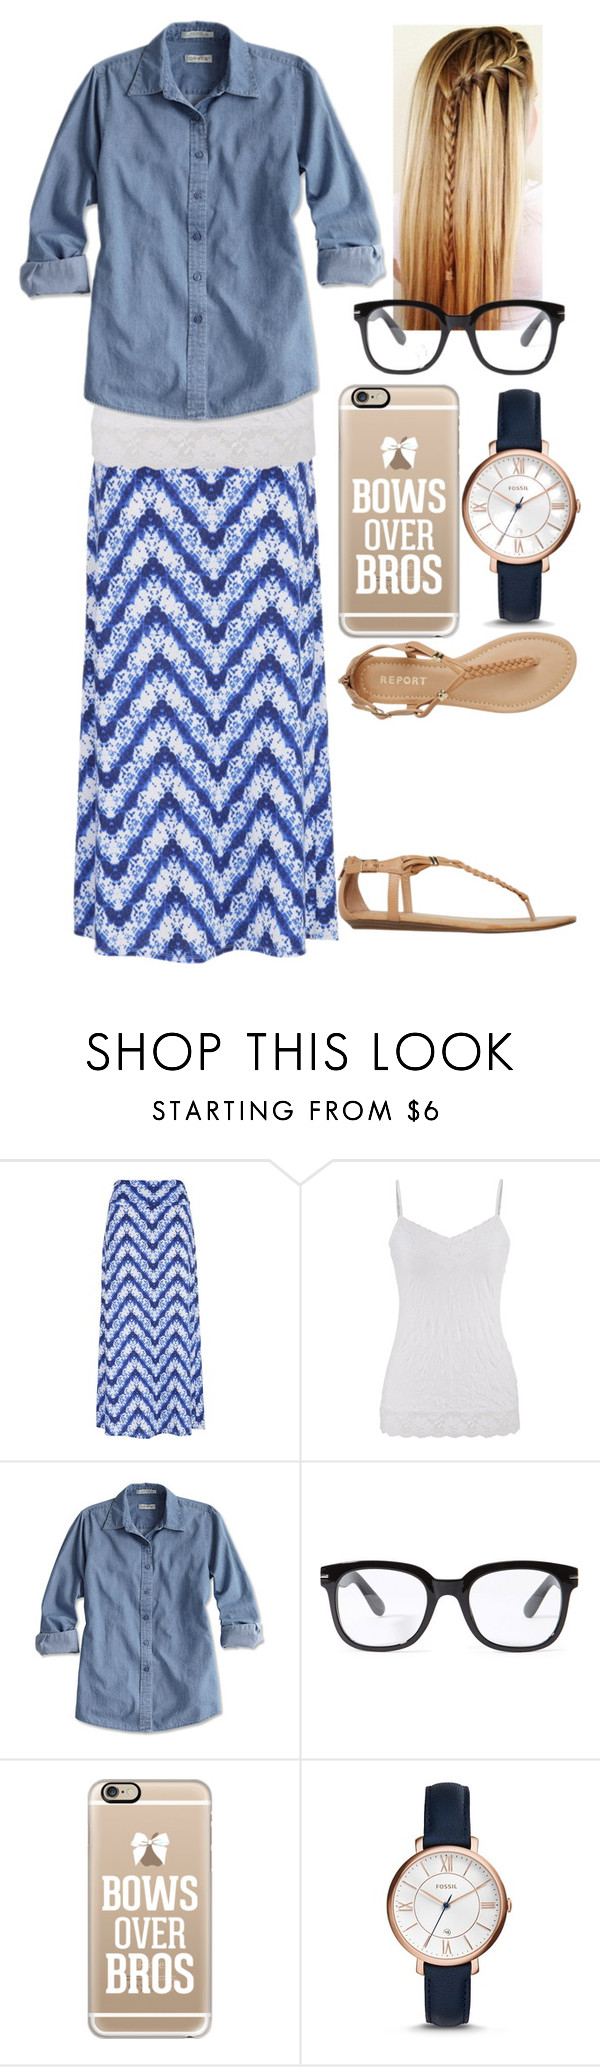 """Blue"" by jen1301 ❤ liked on Polyvore featuring maurices, Forever 21, Casetify, FOSSIL and Report"